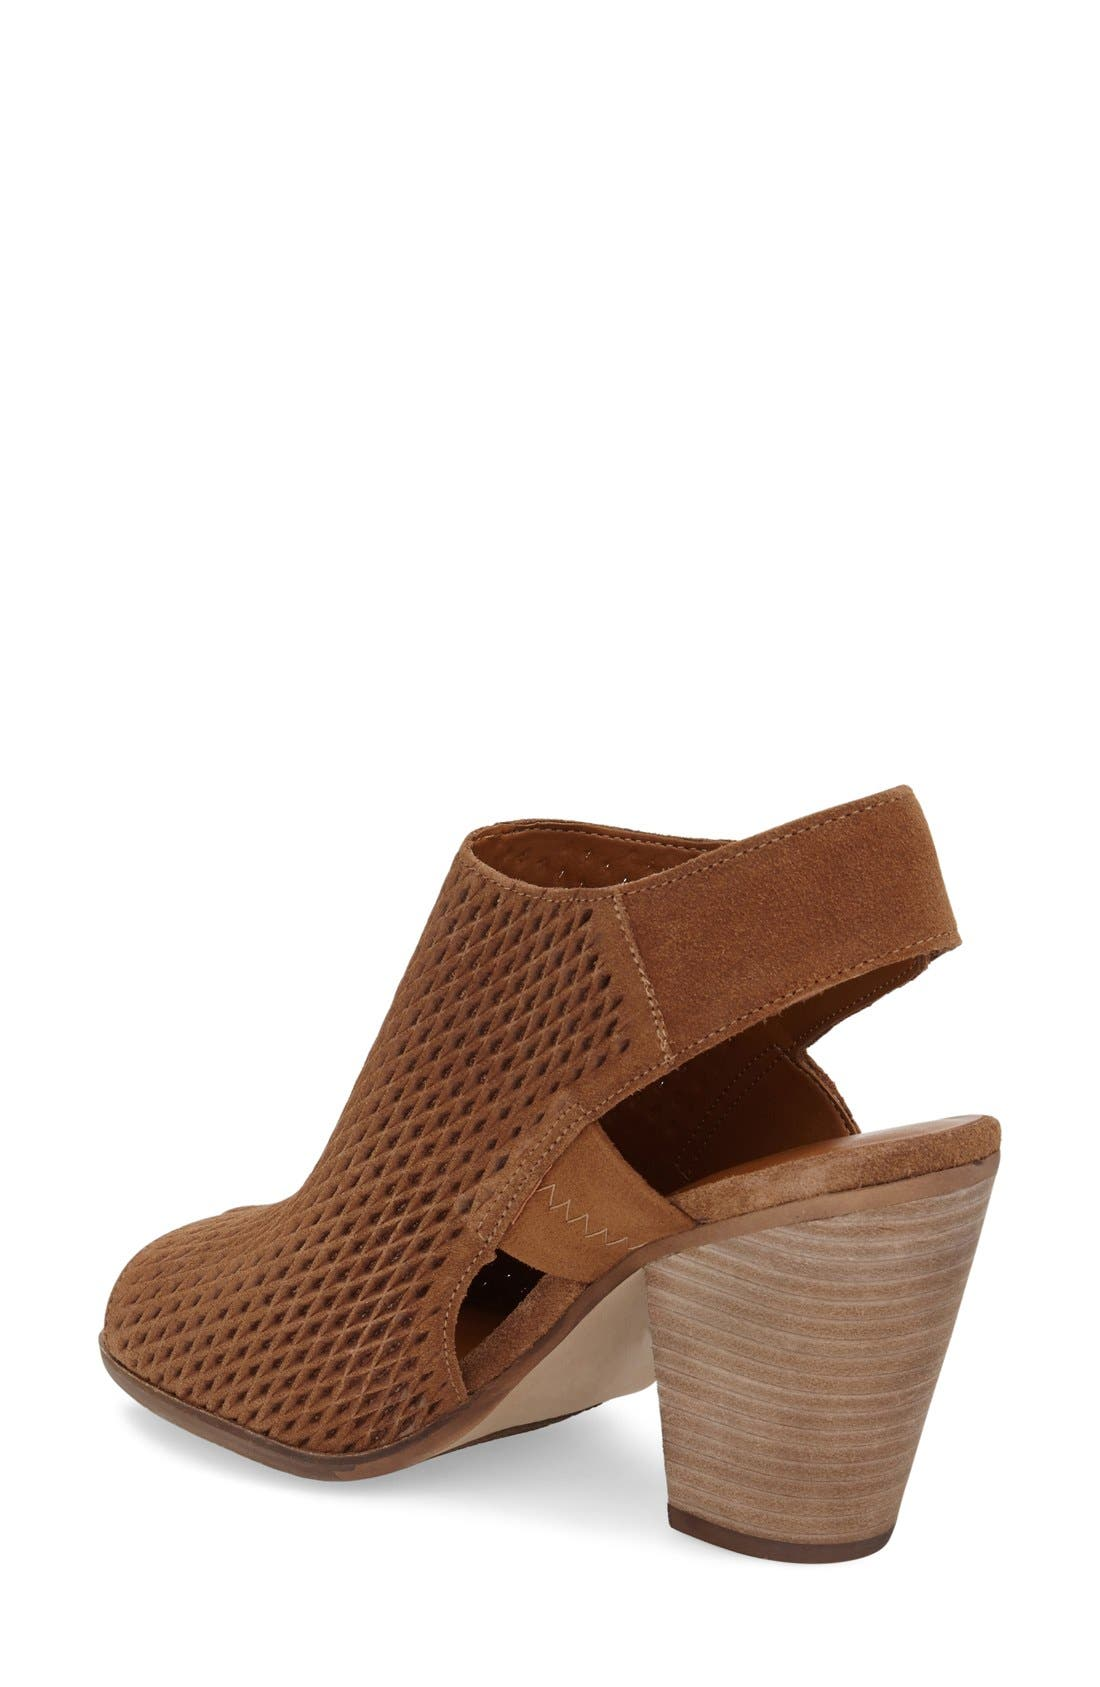 Alternate Image 2  - Arturo Chiang 'Janel' Perforated Slingback Sandal (Women)